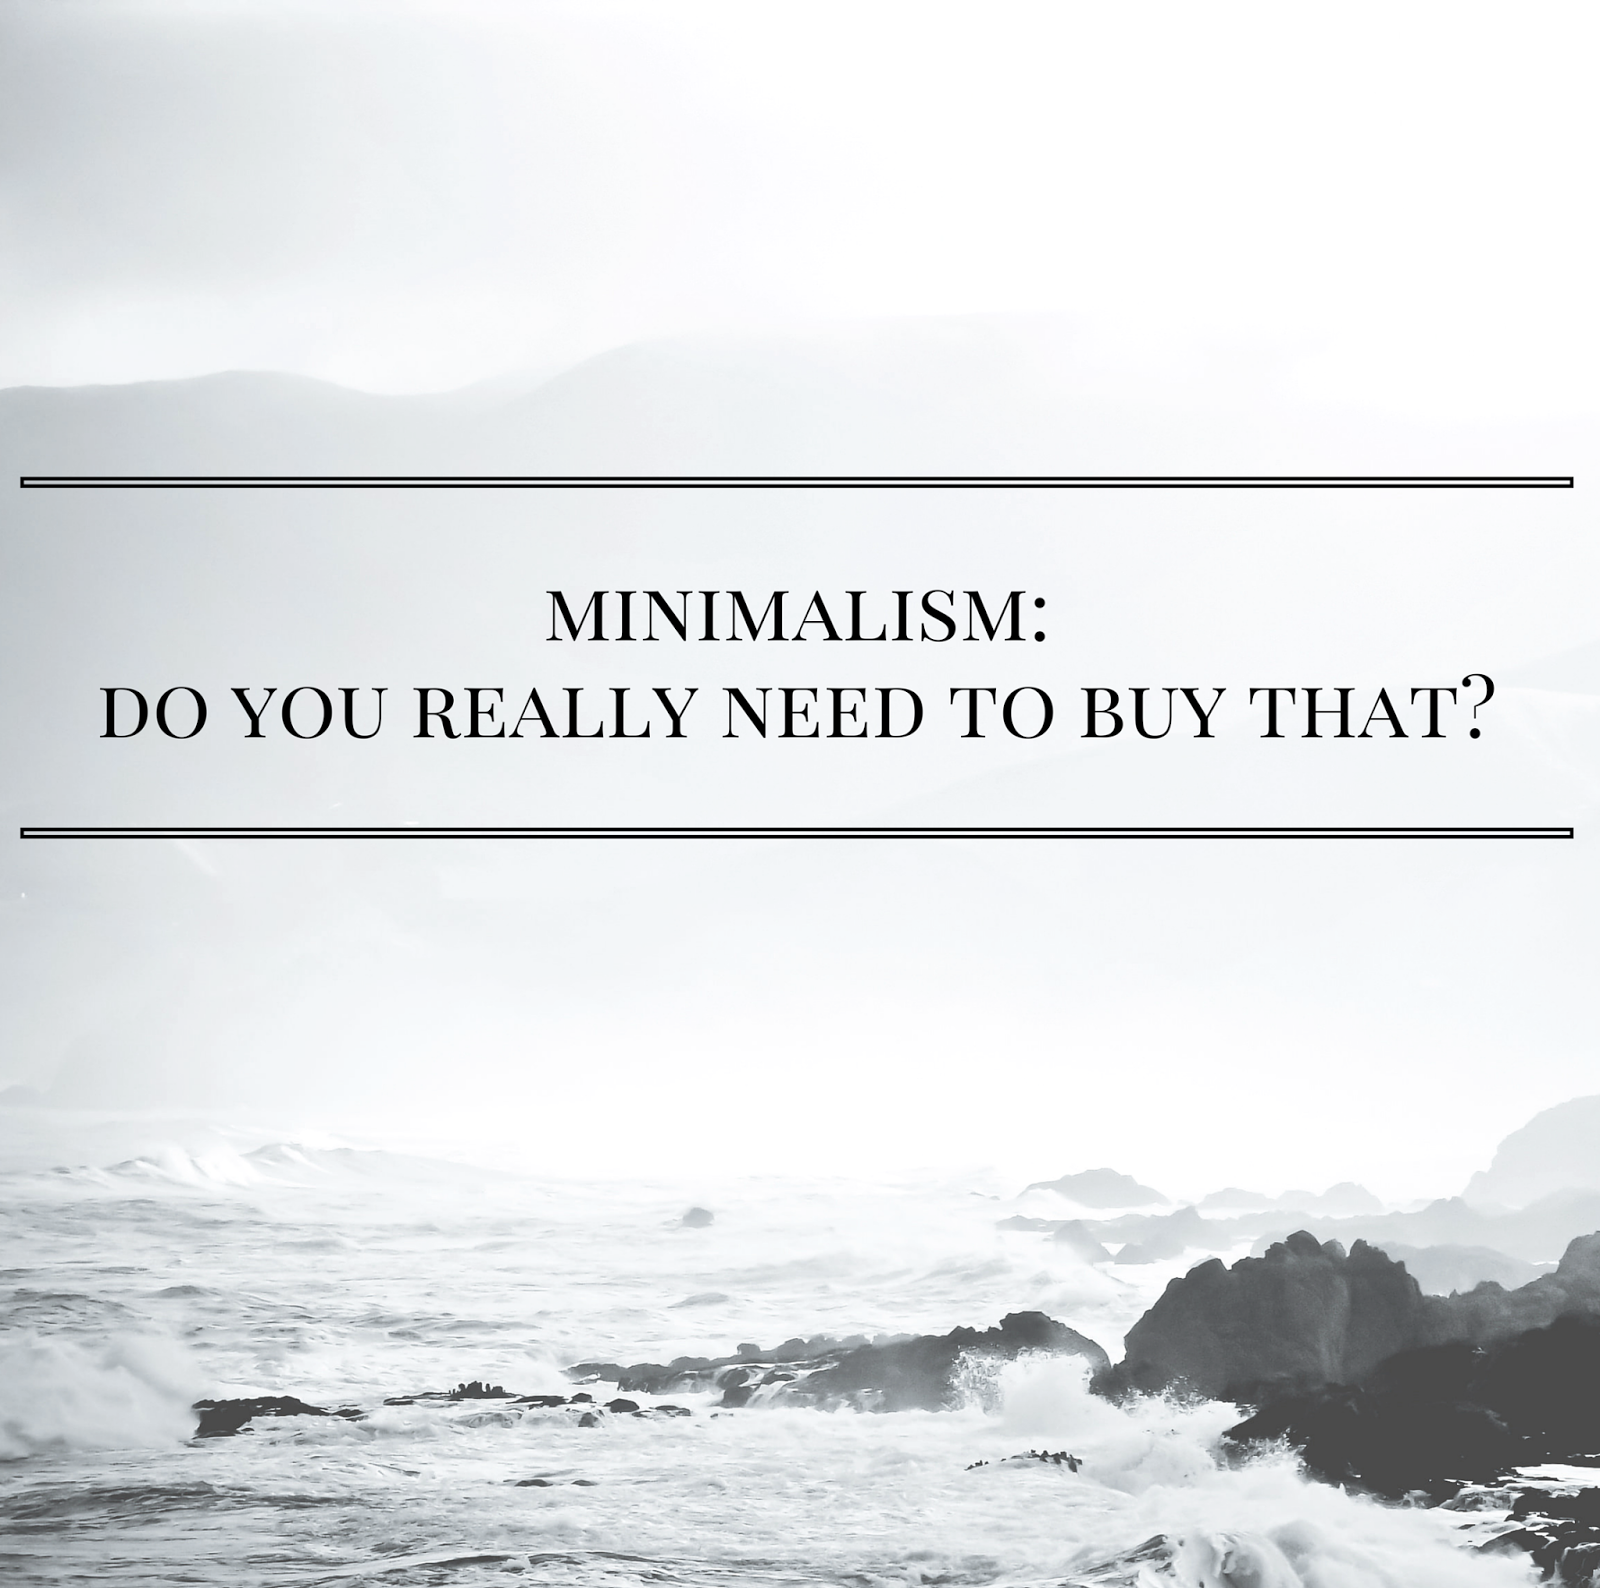 Minimalism: Do You Really Need To Buy That? | http://www.alyssajfreitas.com/2015/07/minimalism-do-you-really-need-to-buy.html